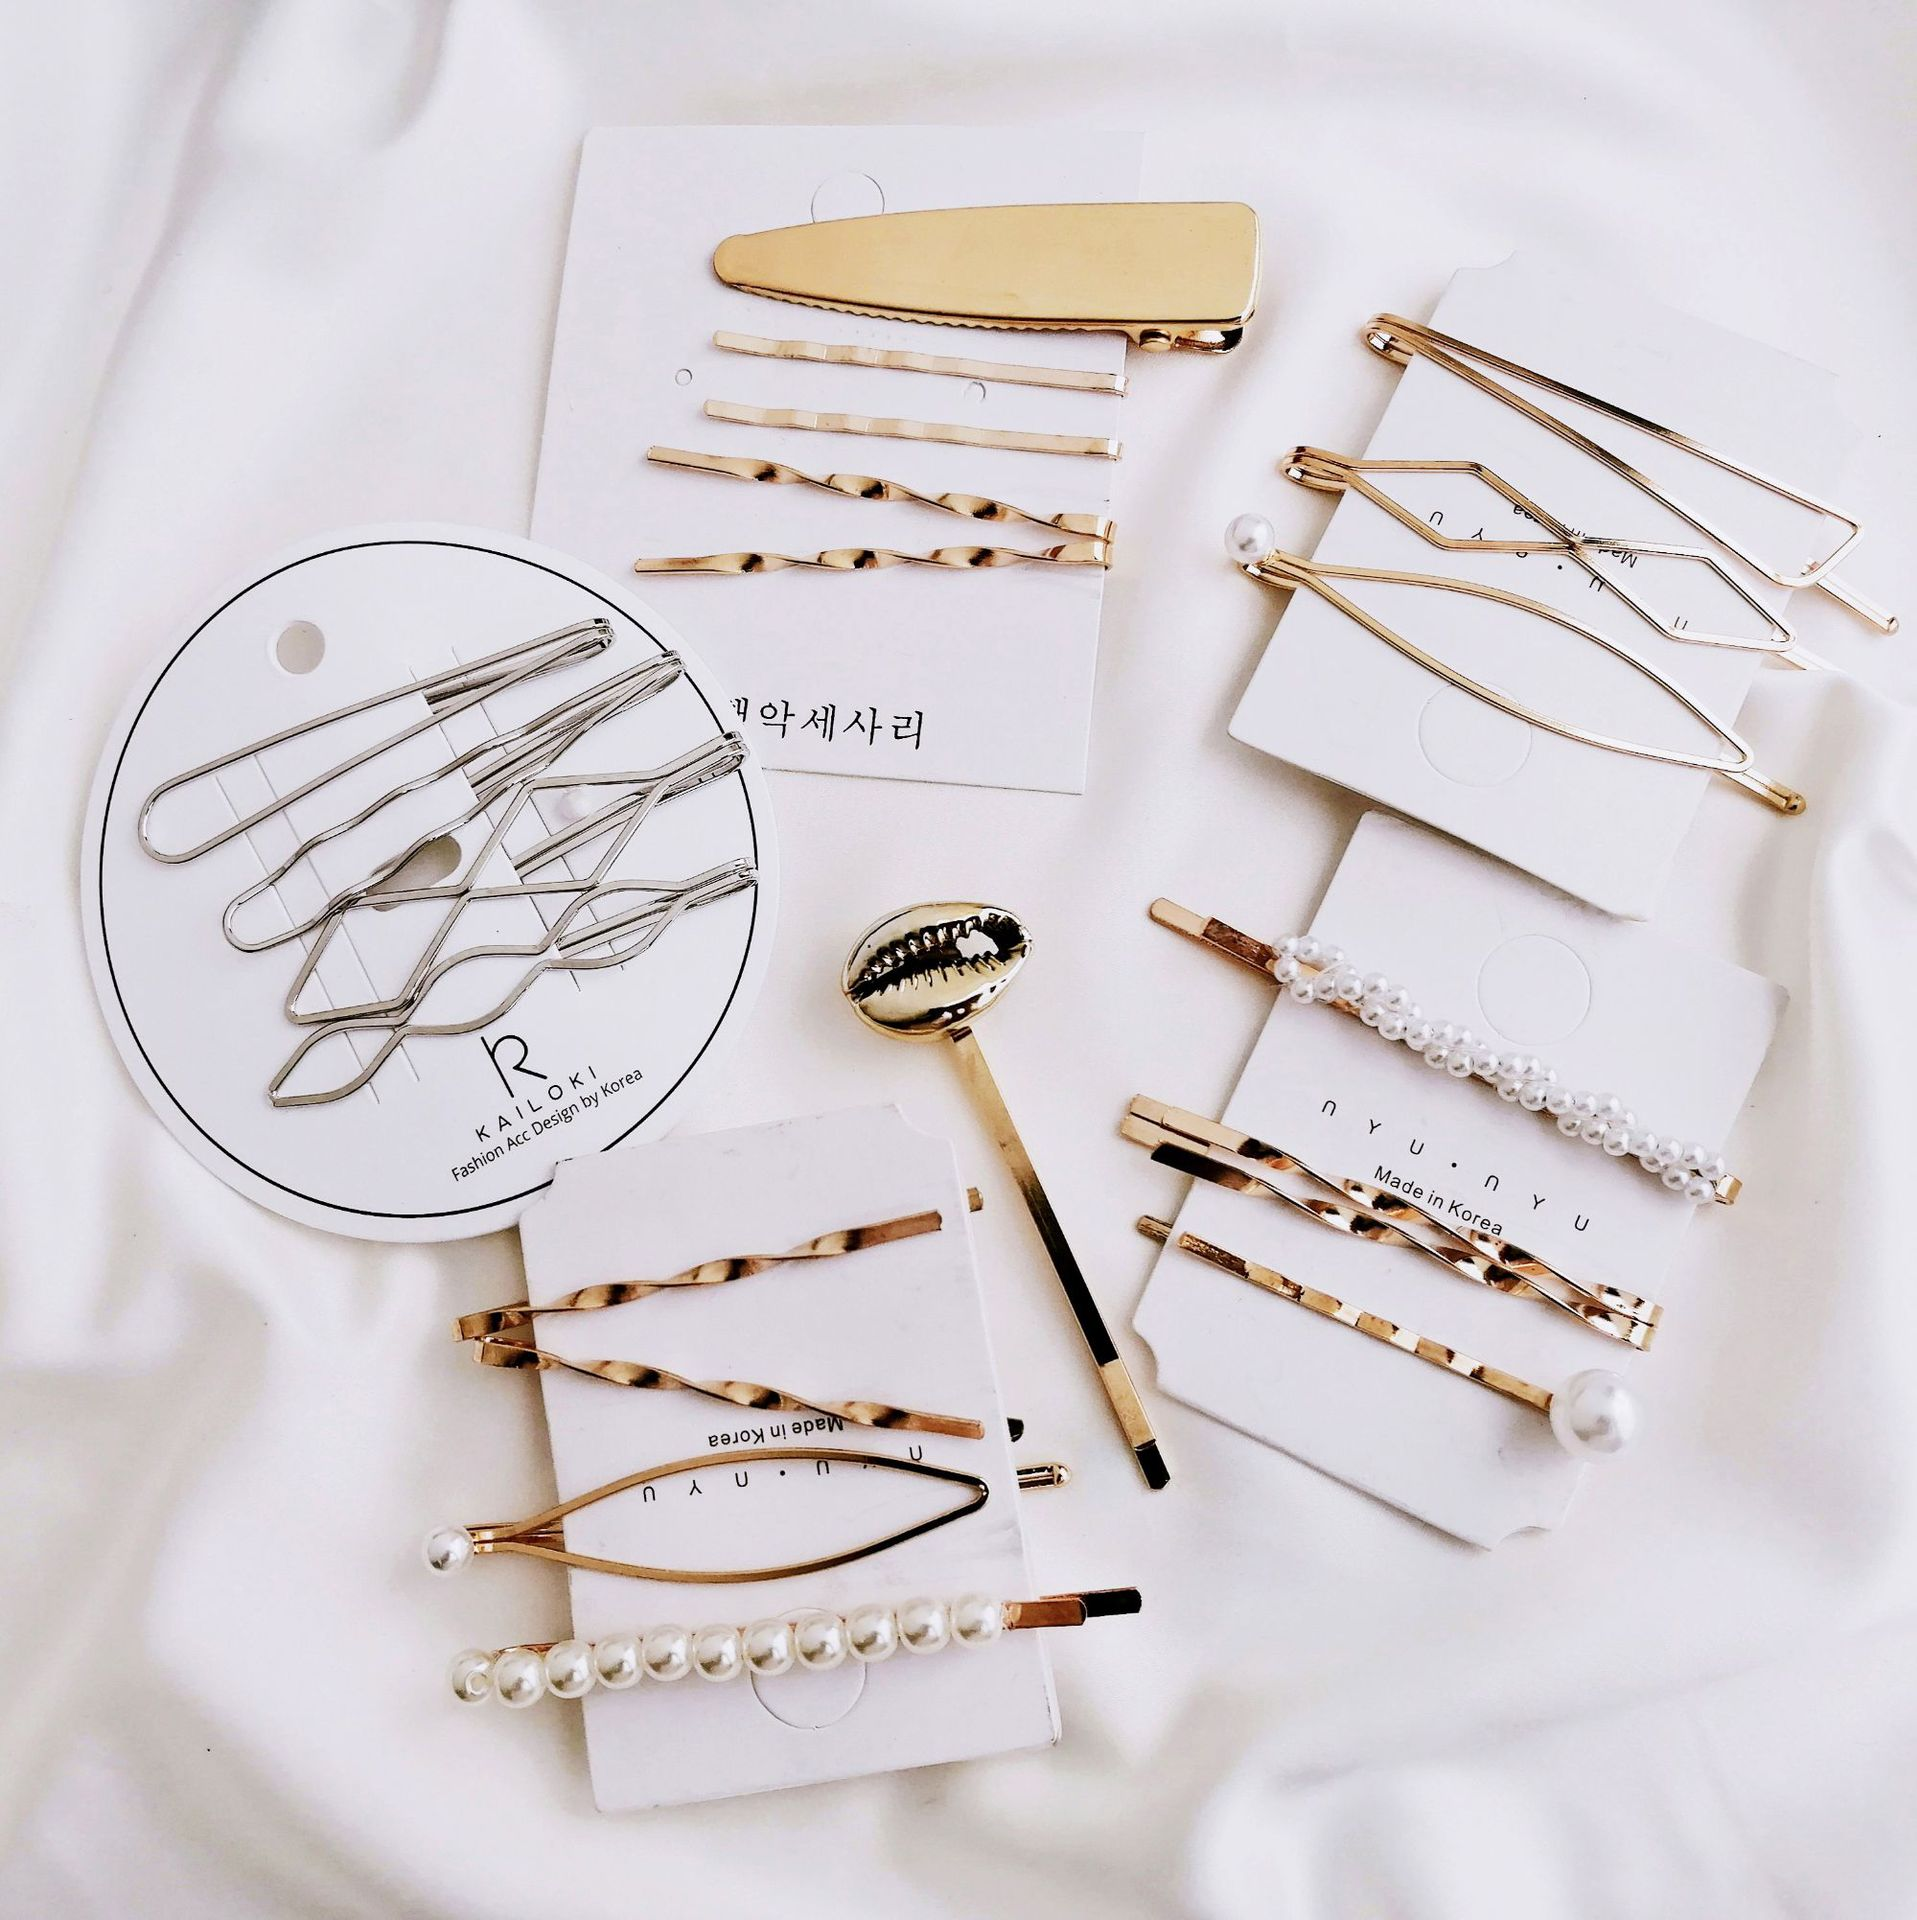 Shell Pearl Metal Hair Clip Hairband Comb Bobby Pin Barrette Hairpin Headdress Accessories woman jewerly(China)